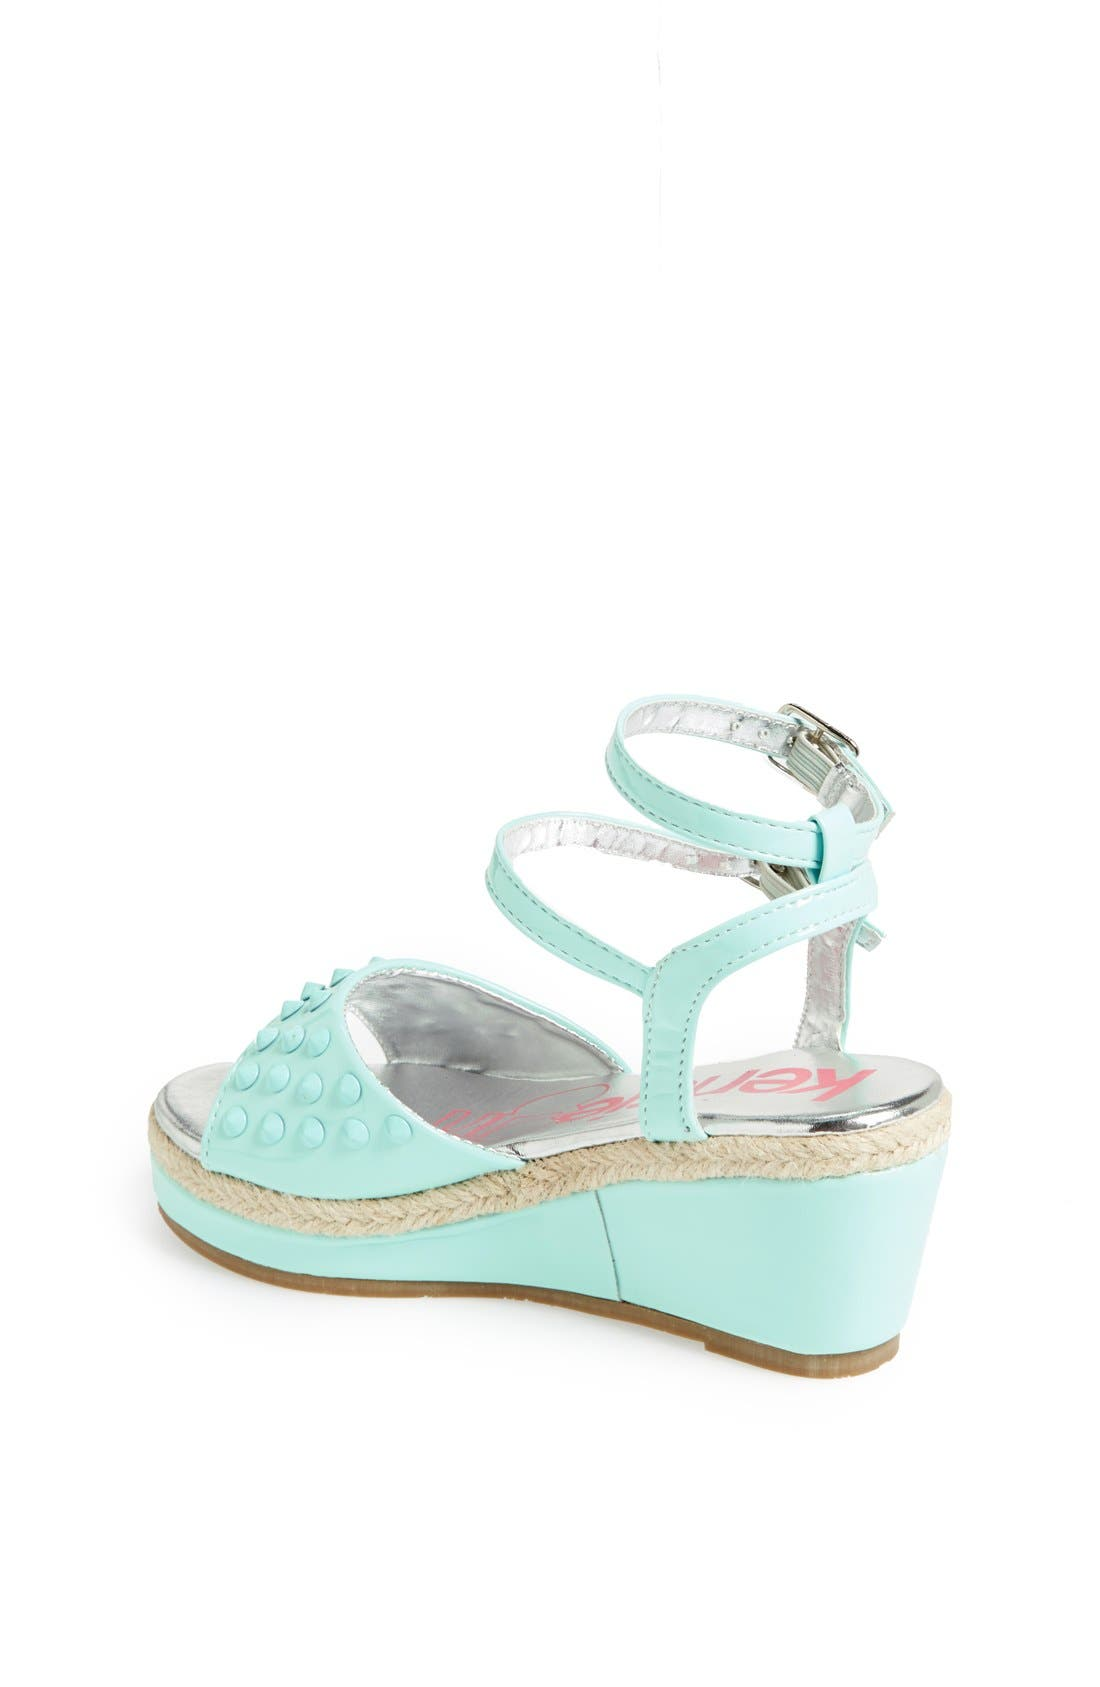 Alternate Image 2  - kensie girl Studded Wedge Sandal (Toddler, Little Kid & Big Kid)